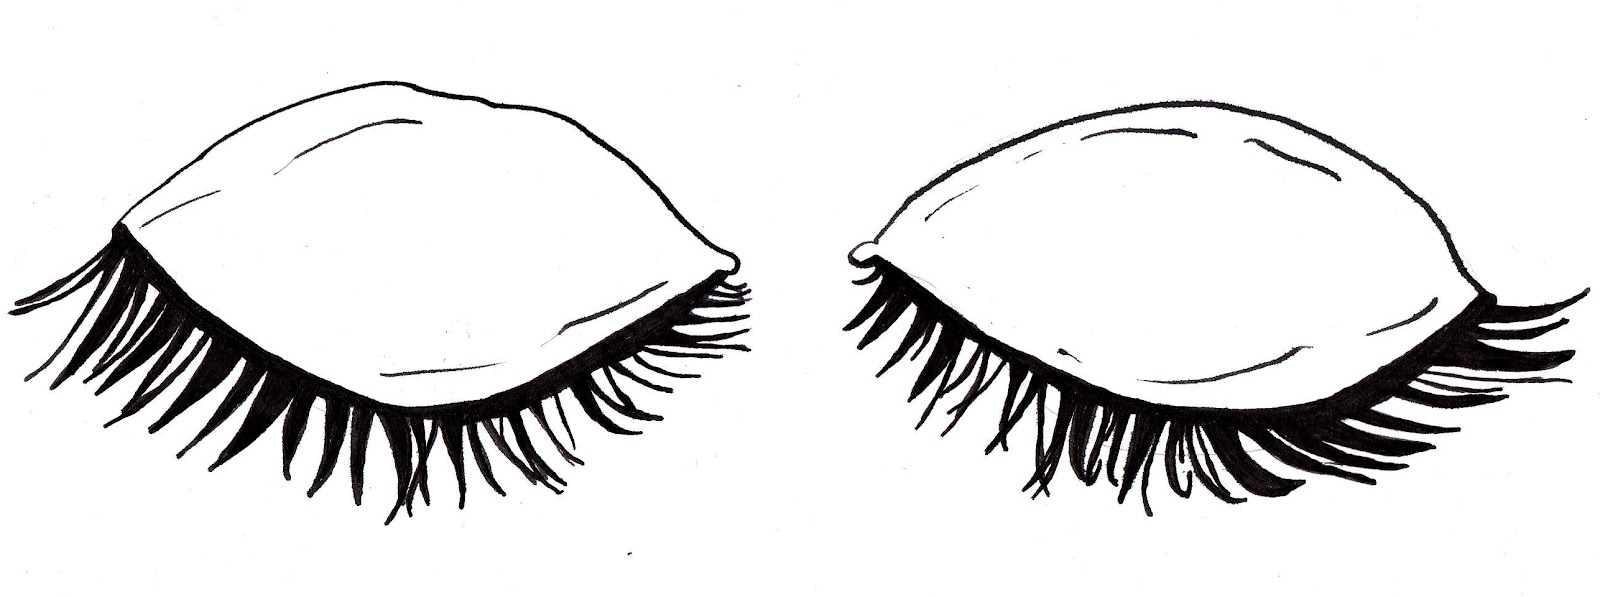 Clipart closed eyes.